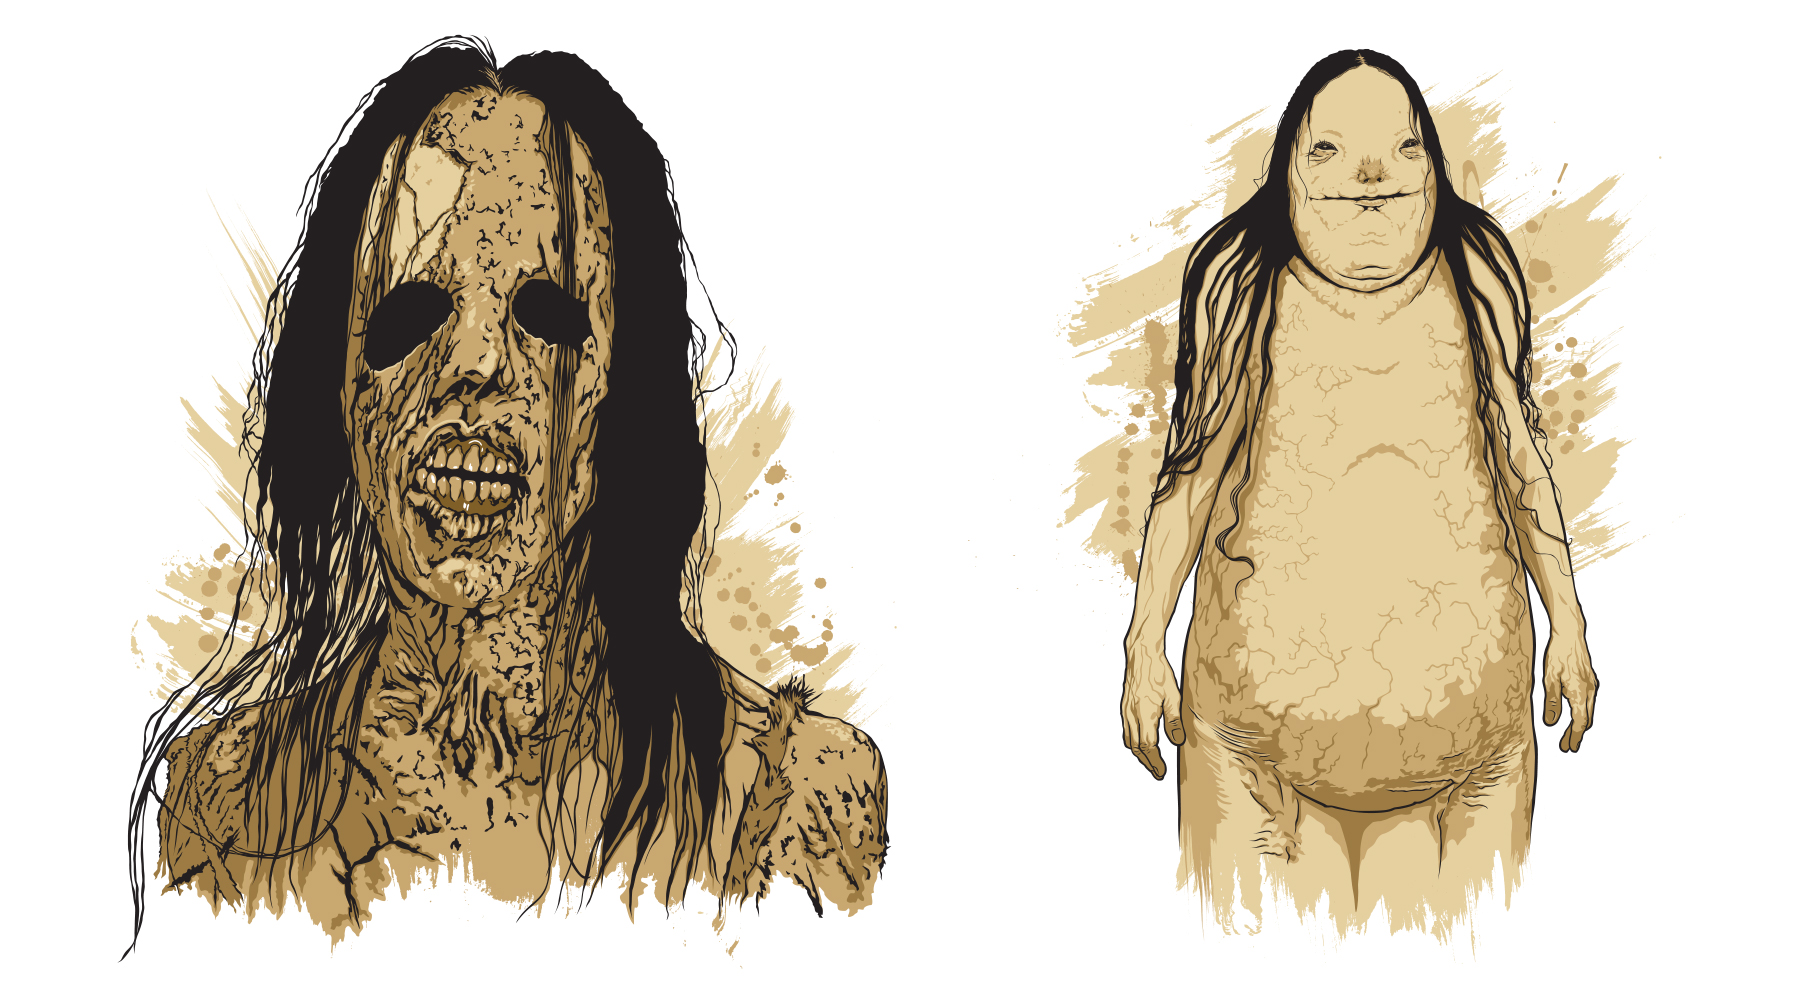 Scary Stories to Tell in the Dark Character Artwork - Artwork 2